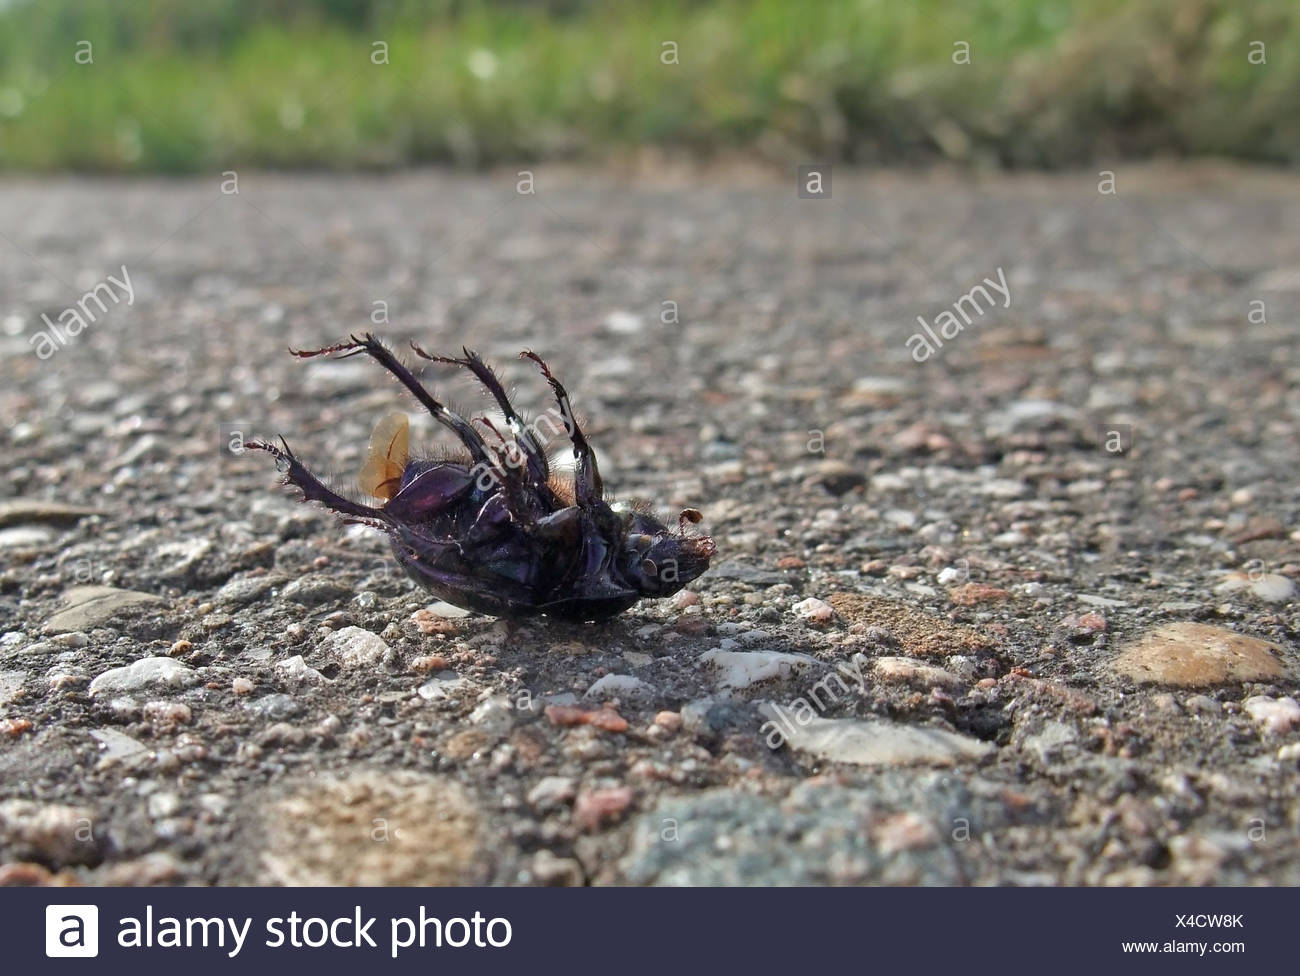 closeup showing a dead bug named 'Cysolina sturmi' supine on pavement in sunny ambiance - Stock Image